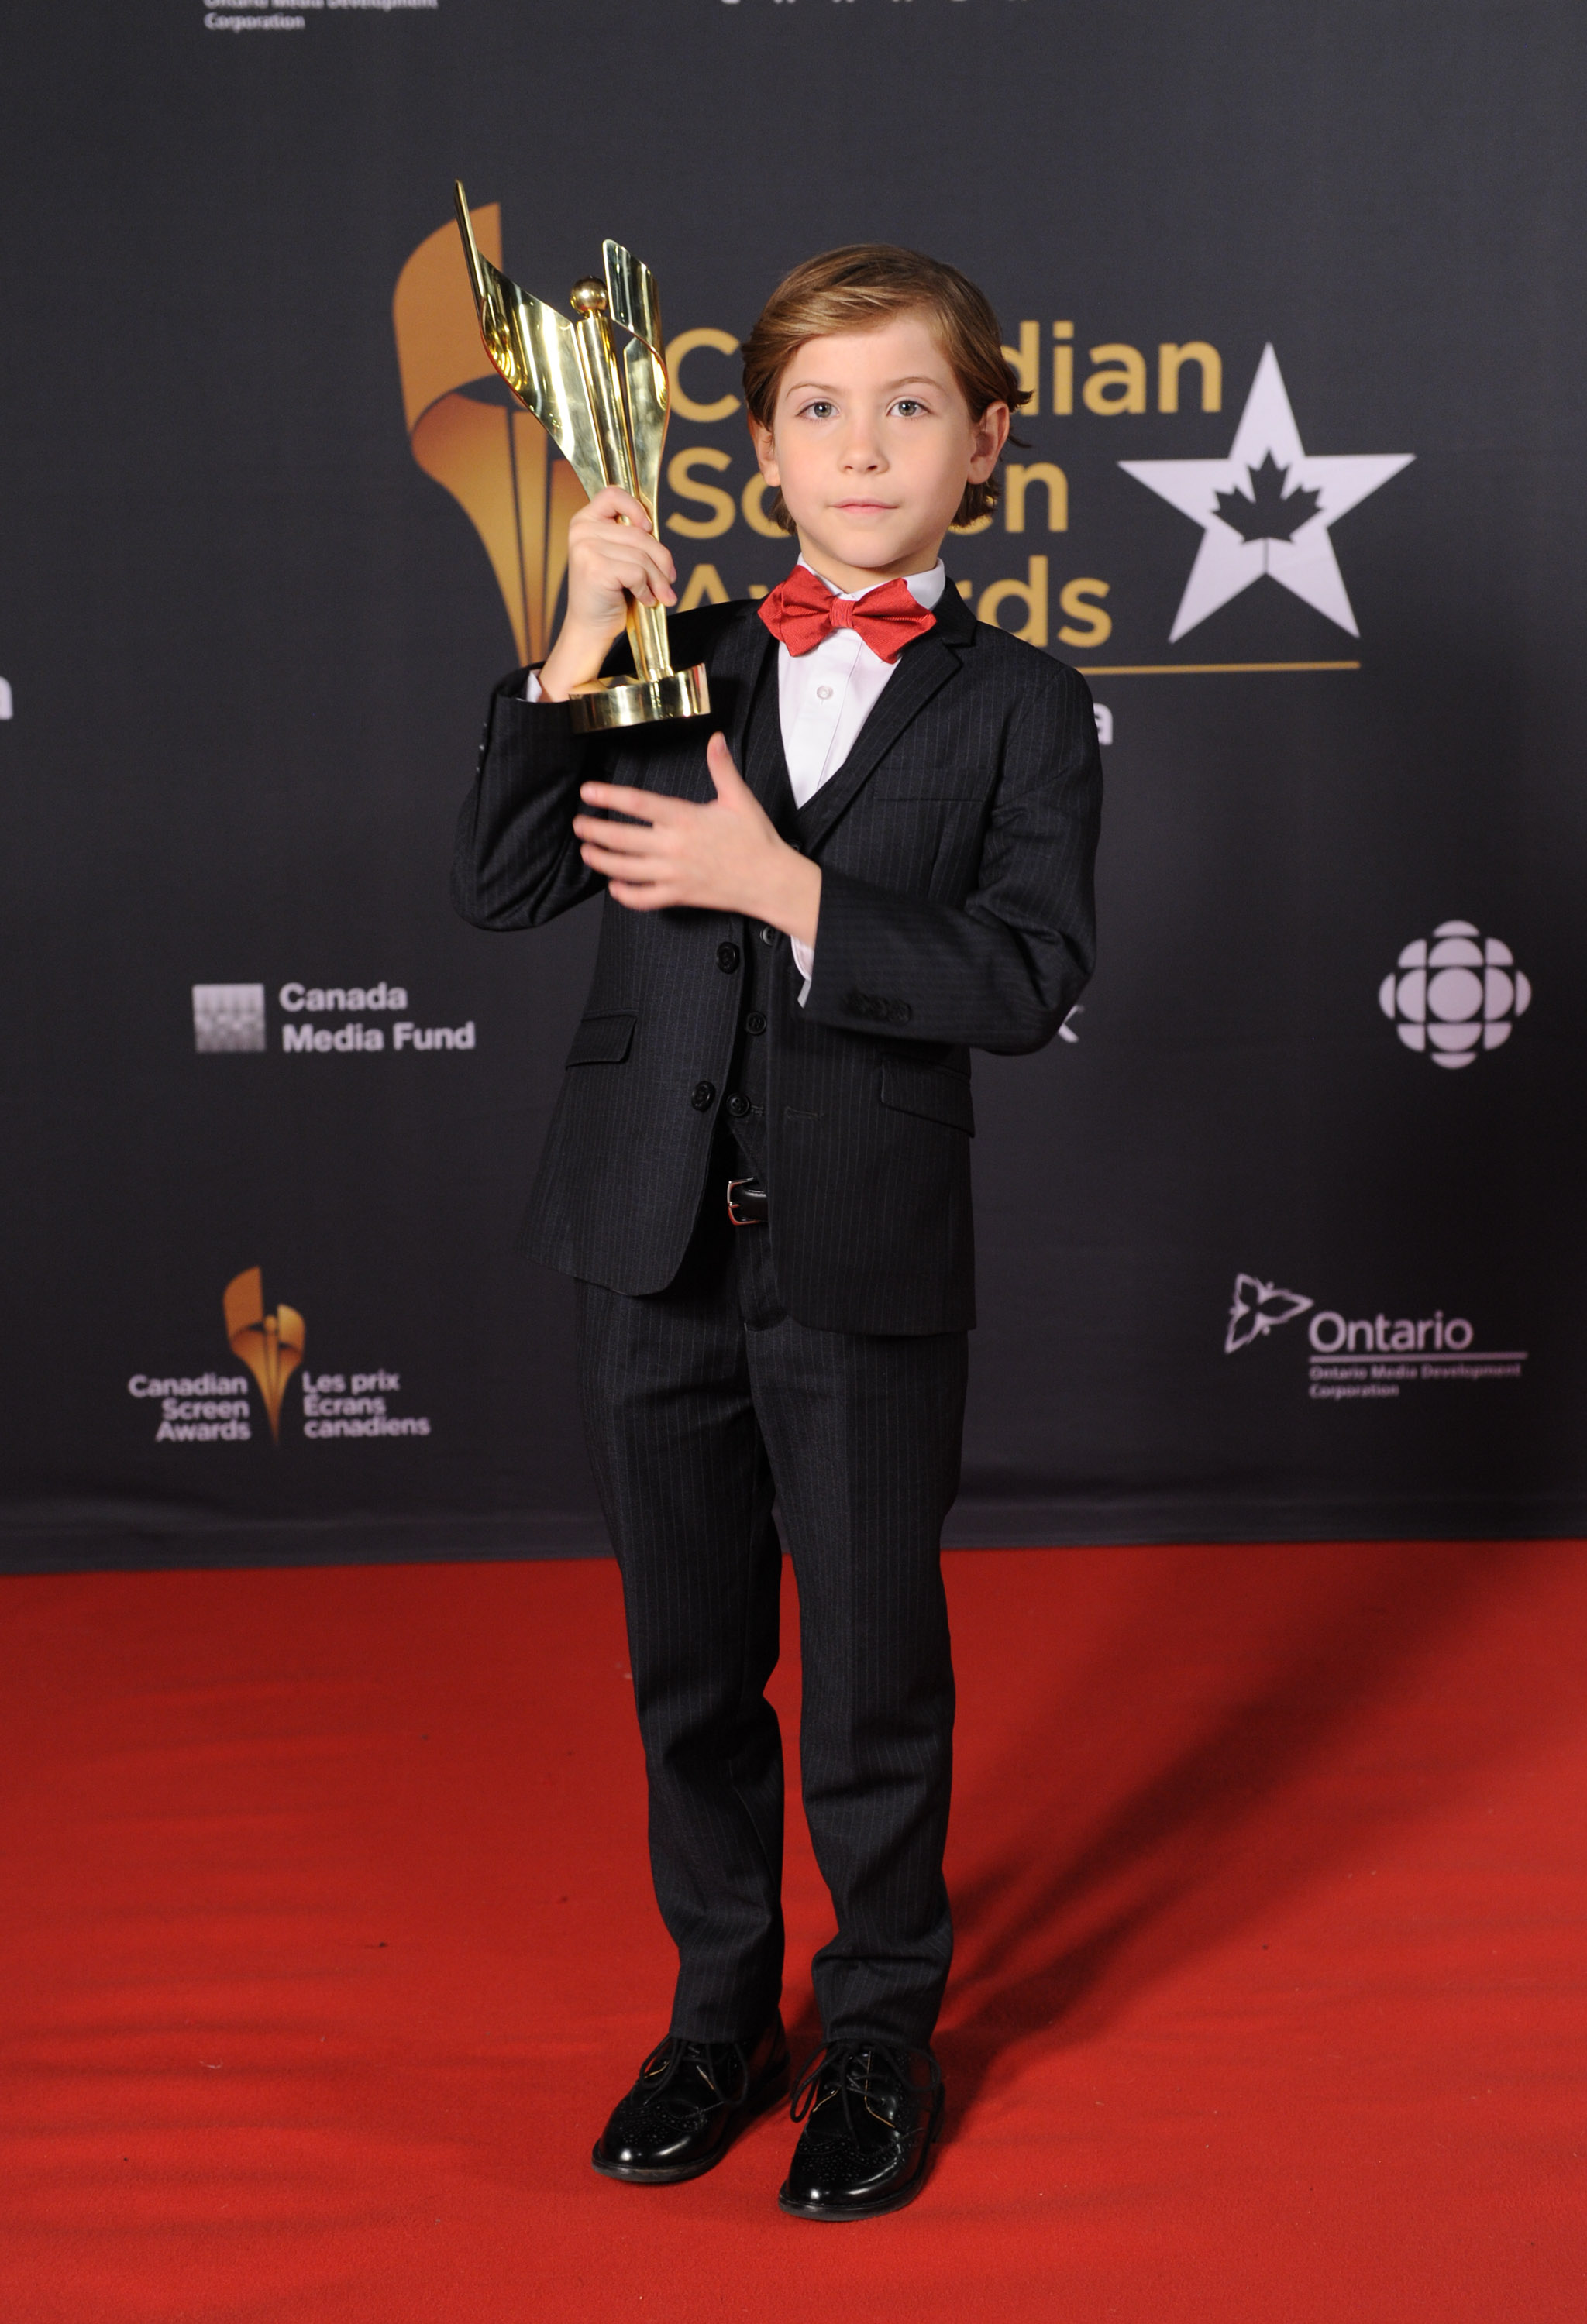 LiVECAST.ca - Canadian Screen Awards - Press Room